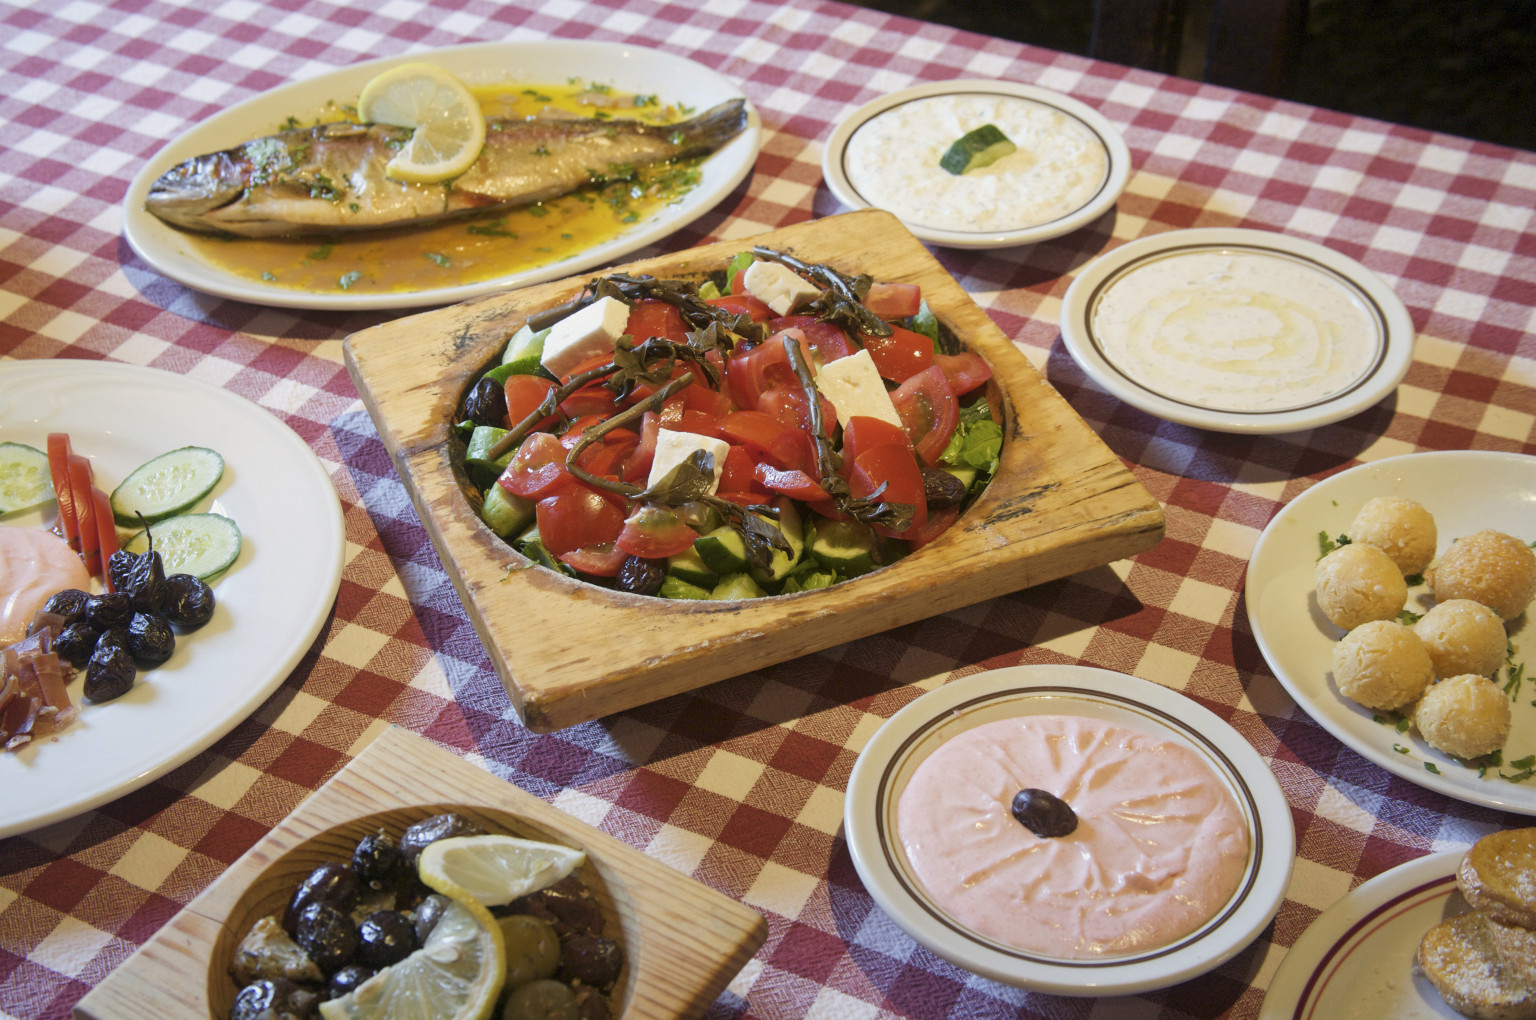 Mediterranean Diet May Protect Against Diabetes, Study